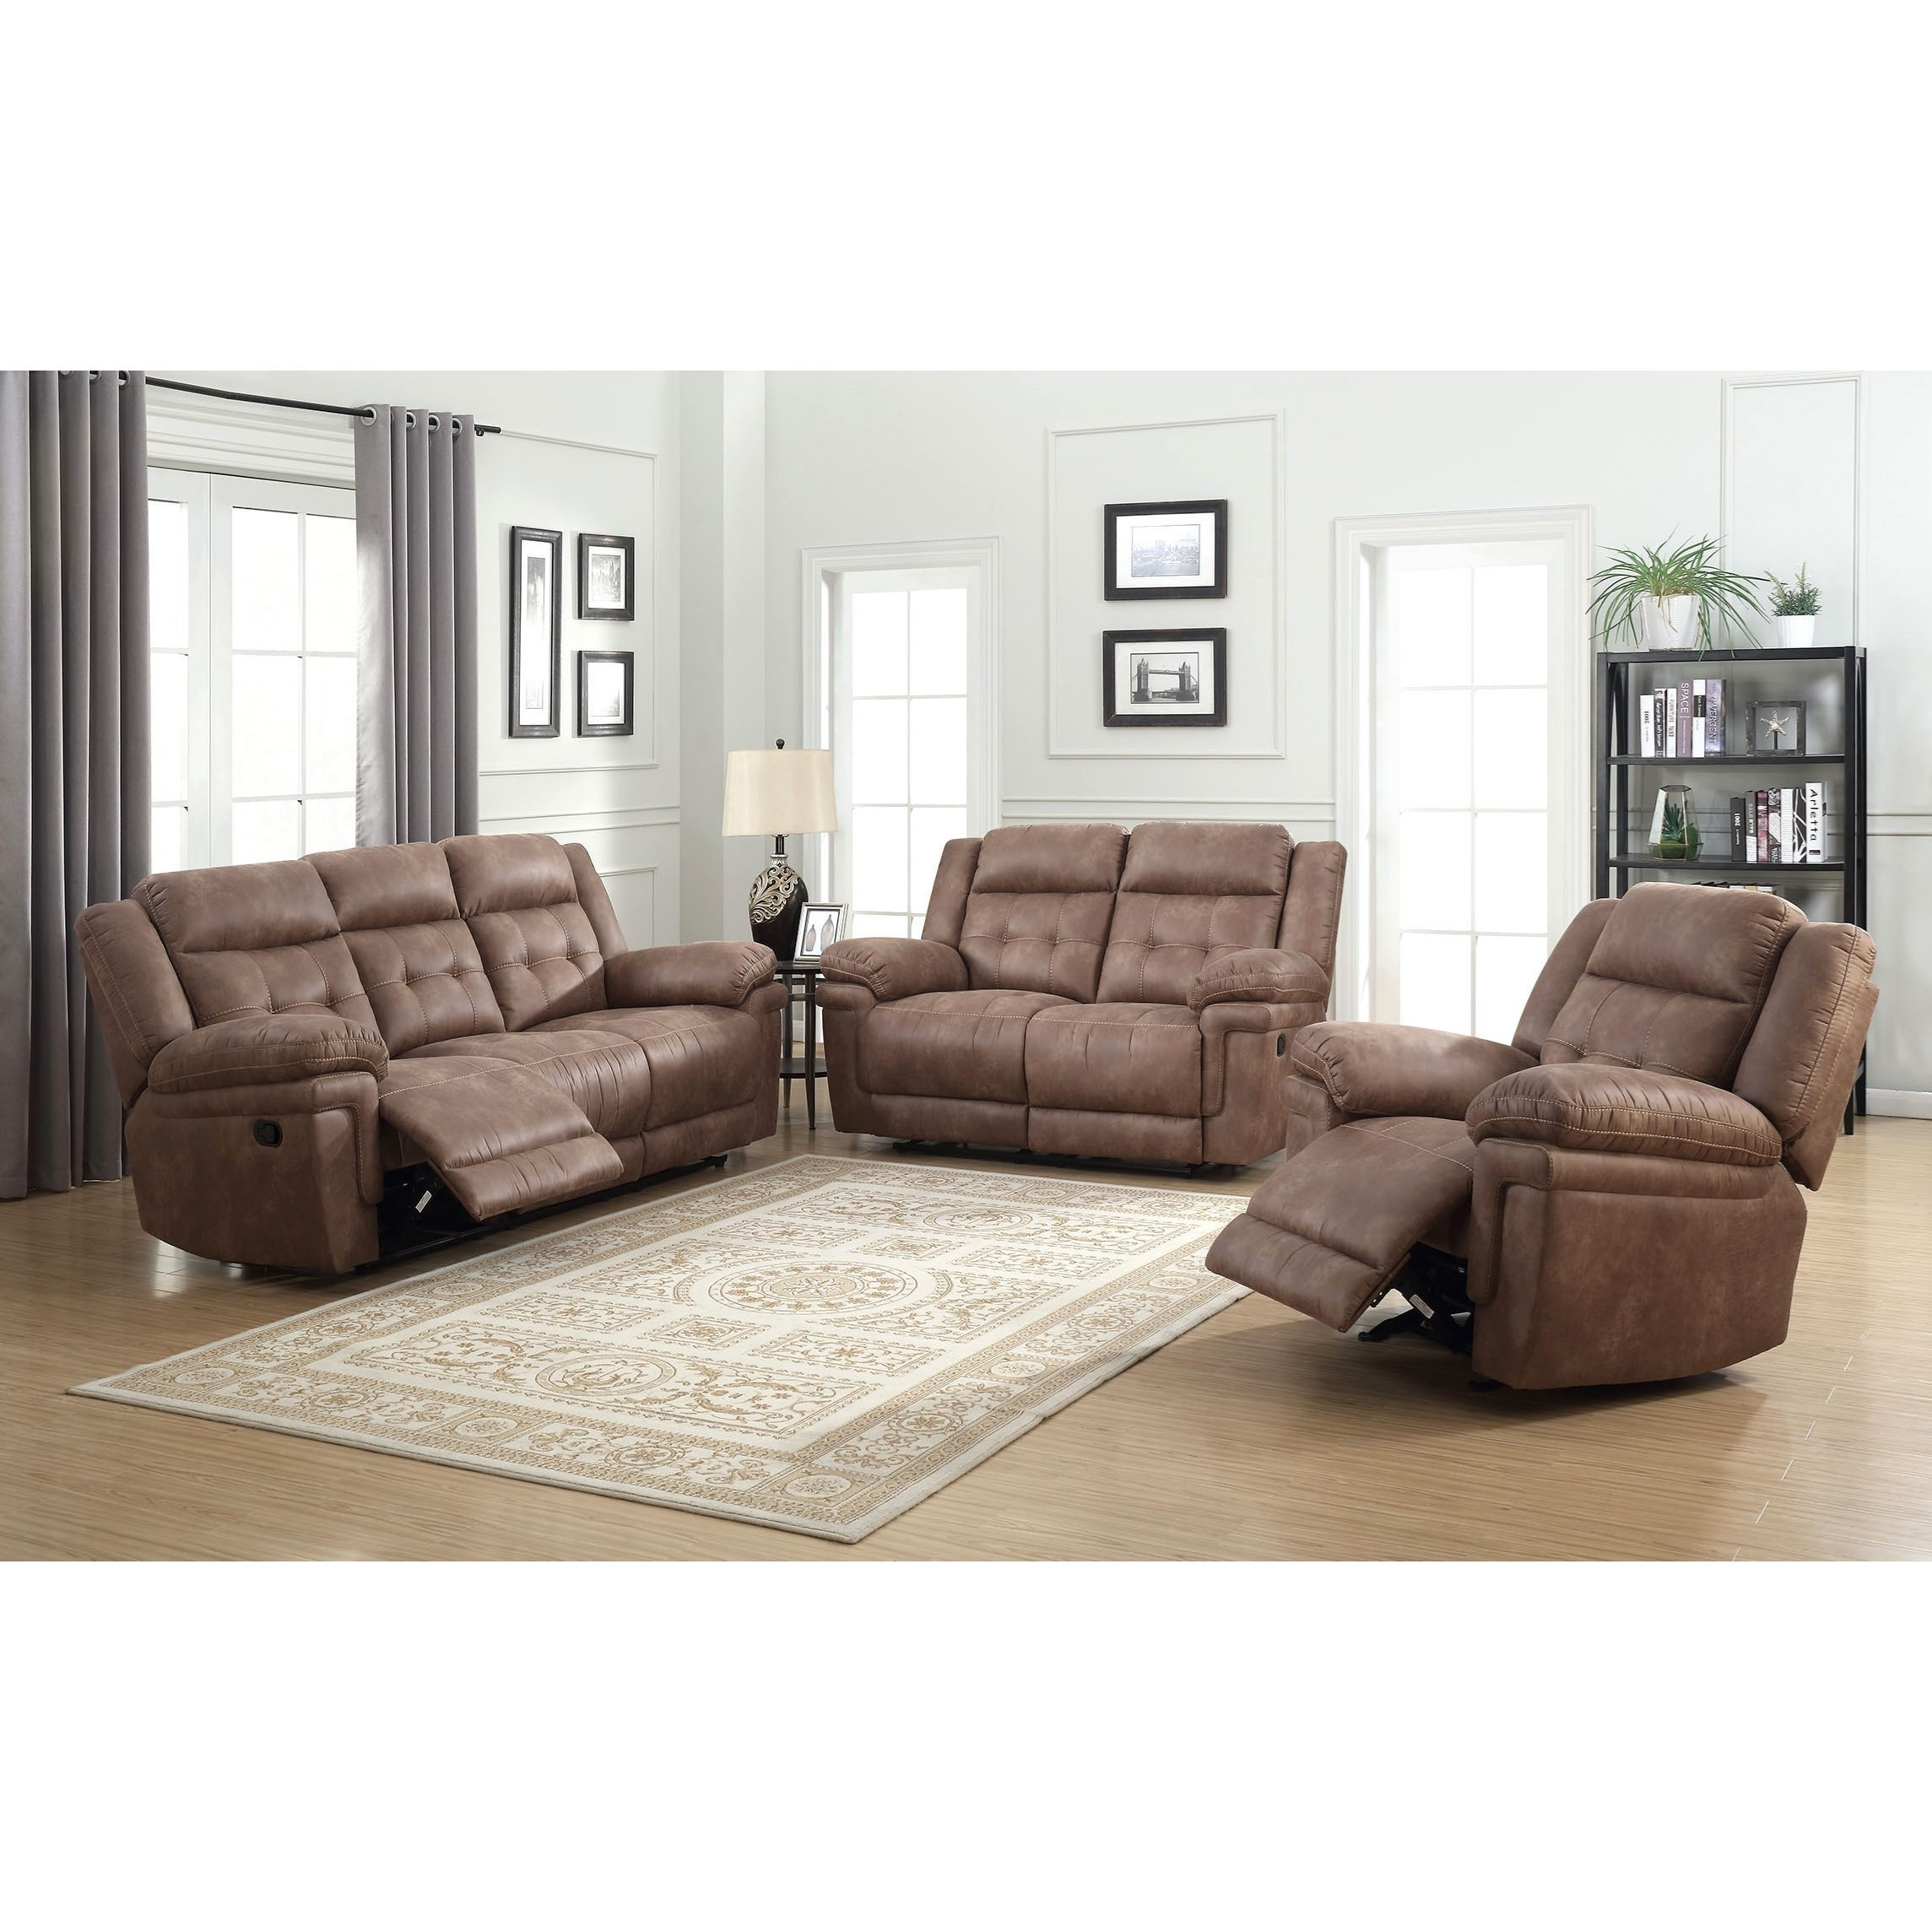 Anastasia Casual Reclining Sofa With Tufted Back Morris Home Reclining Sofas